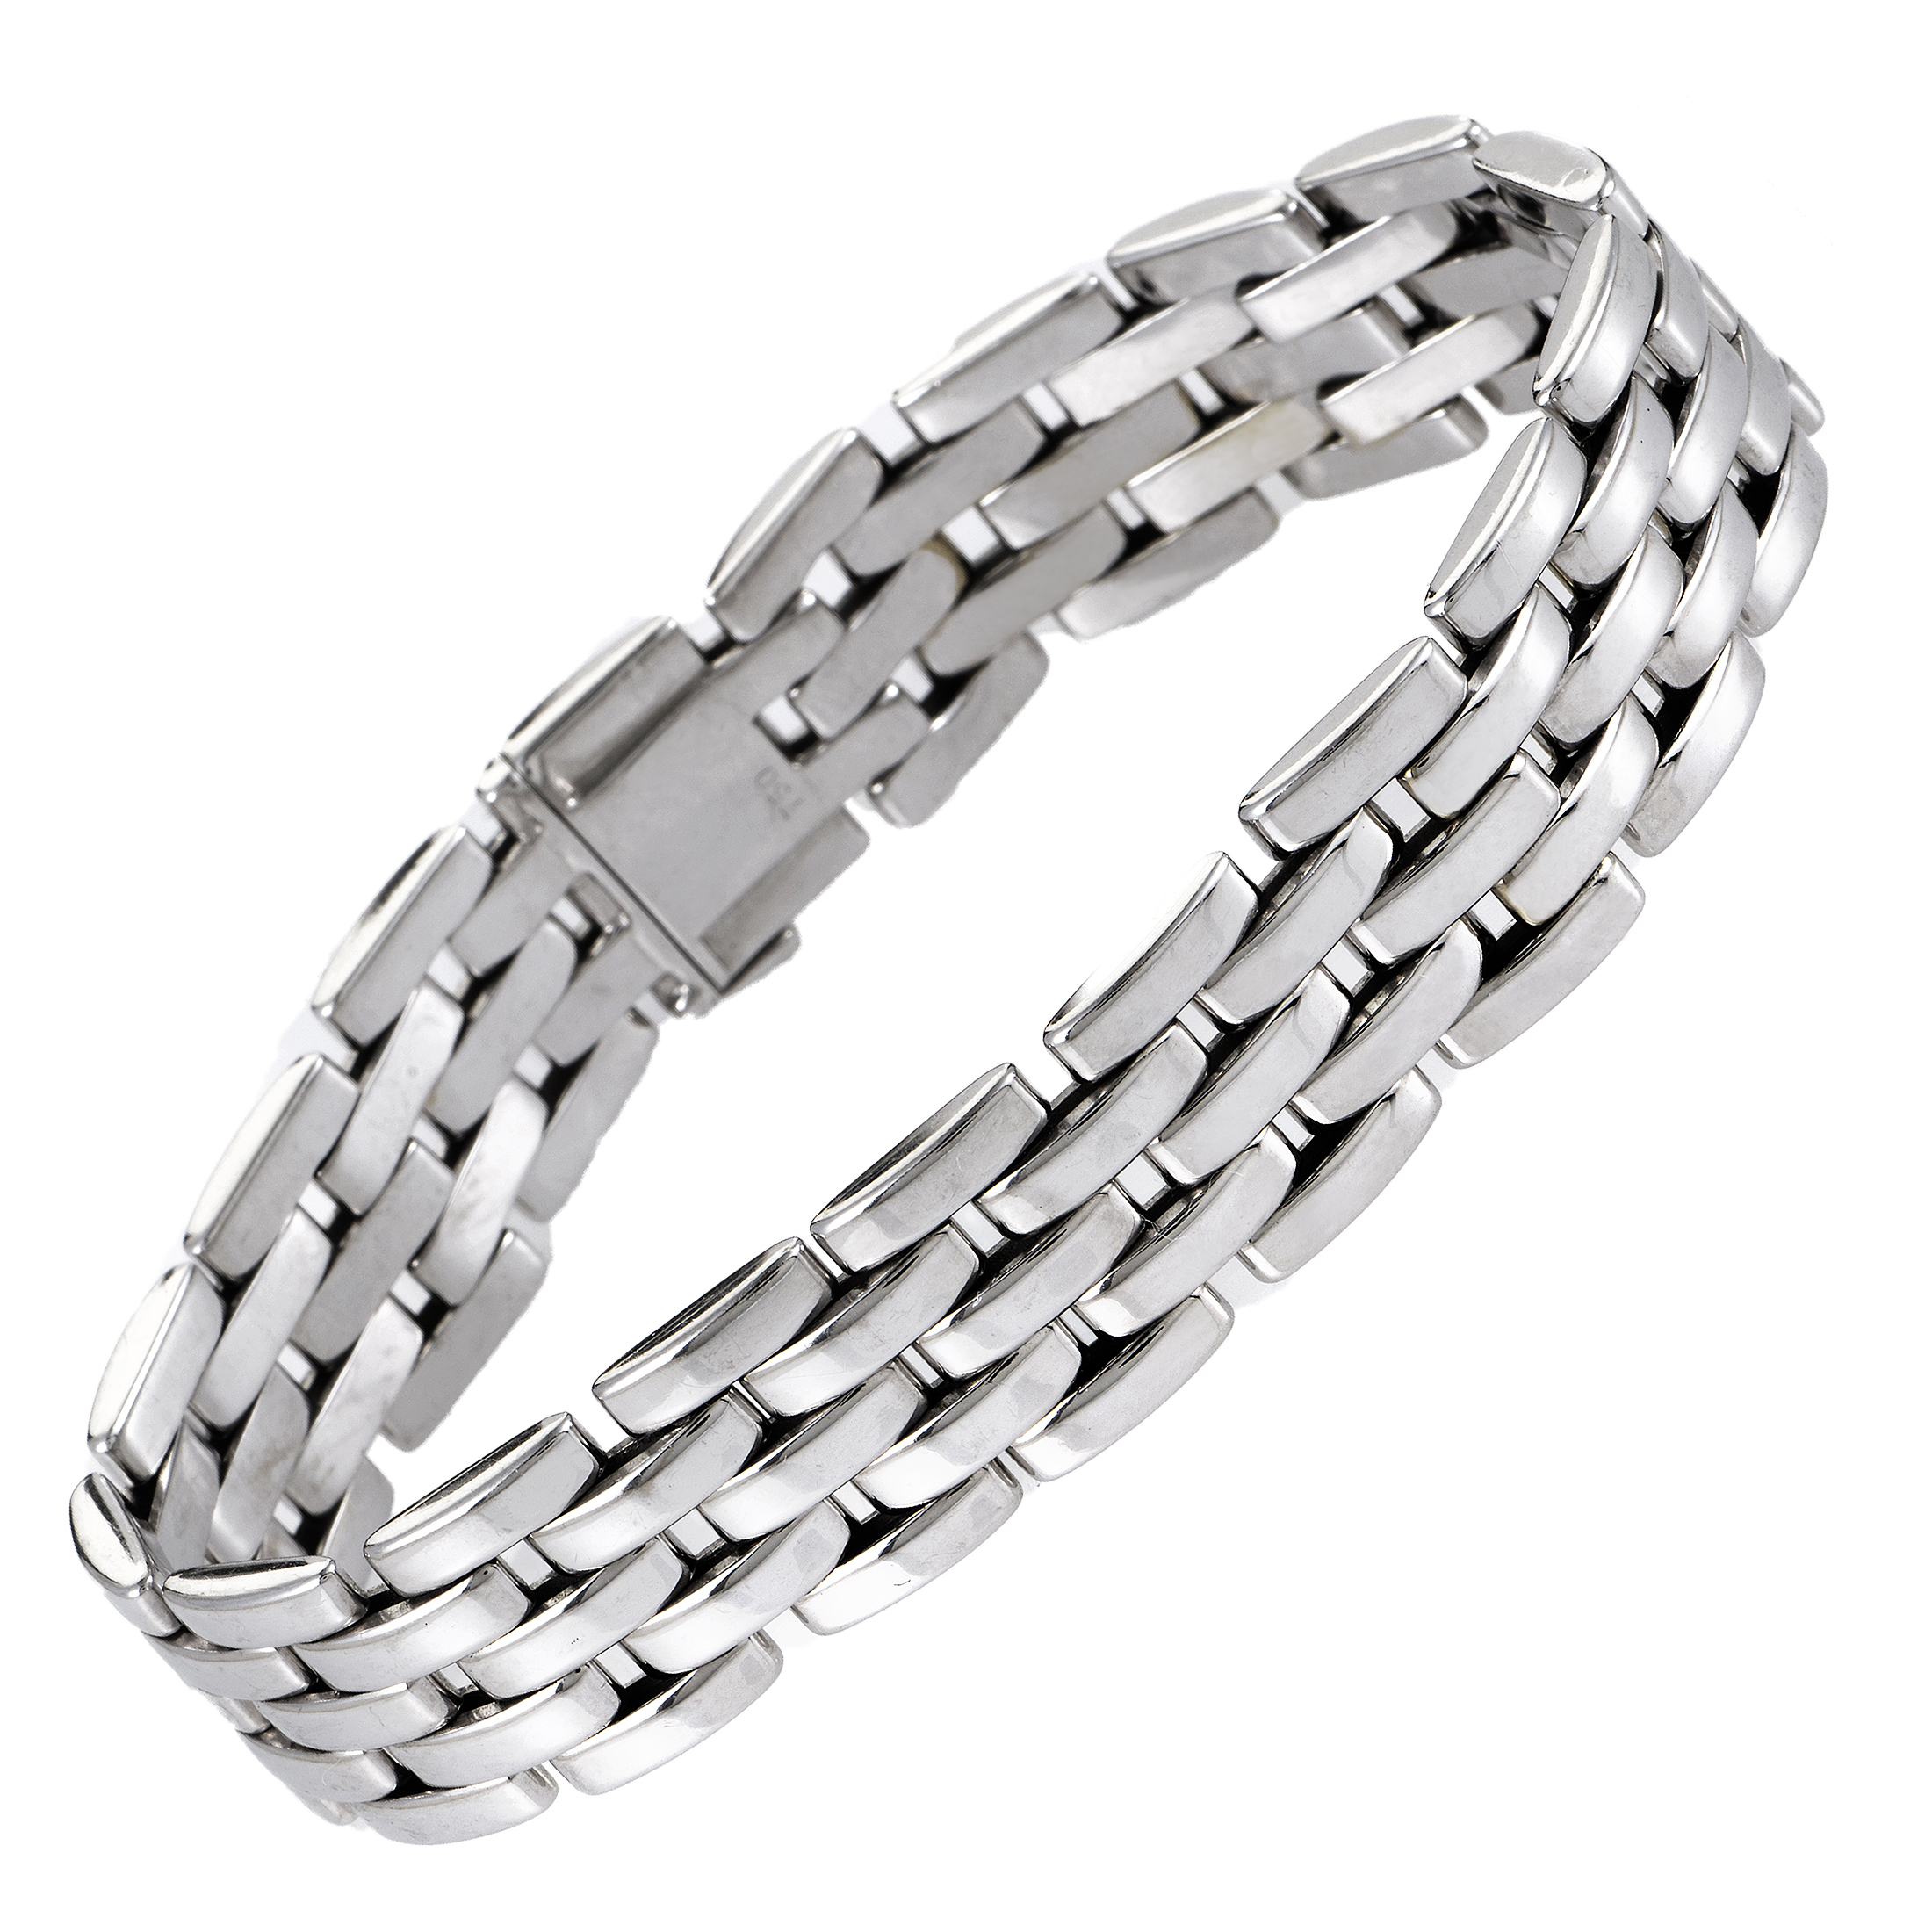 Cartier Maillon Panthere Women's 18K White Gold Bracelet